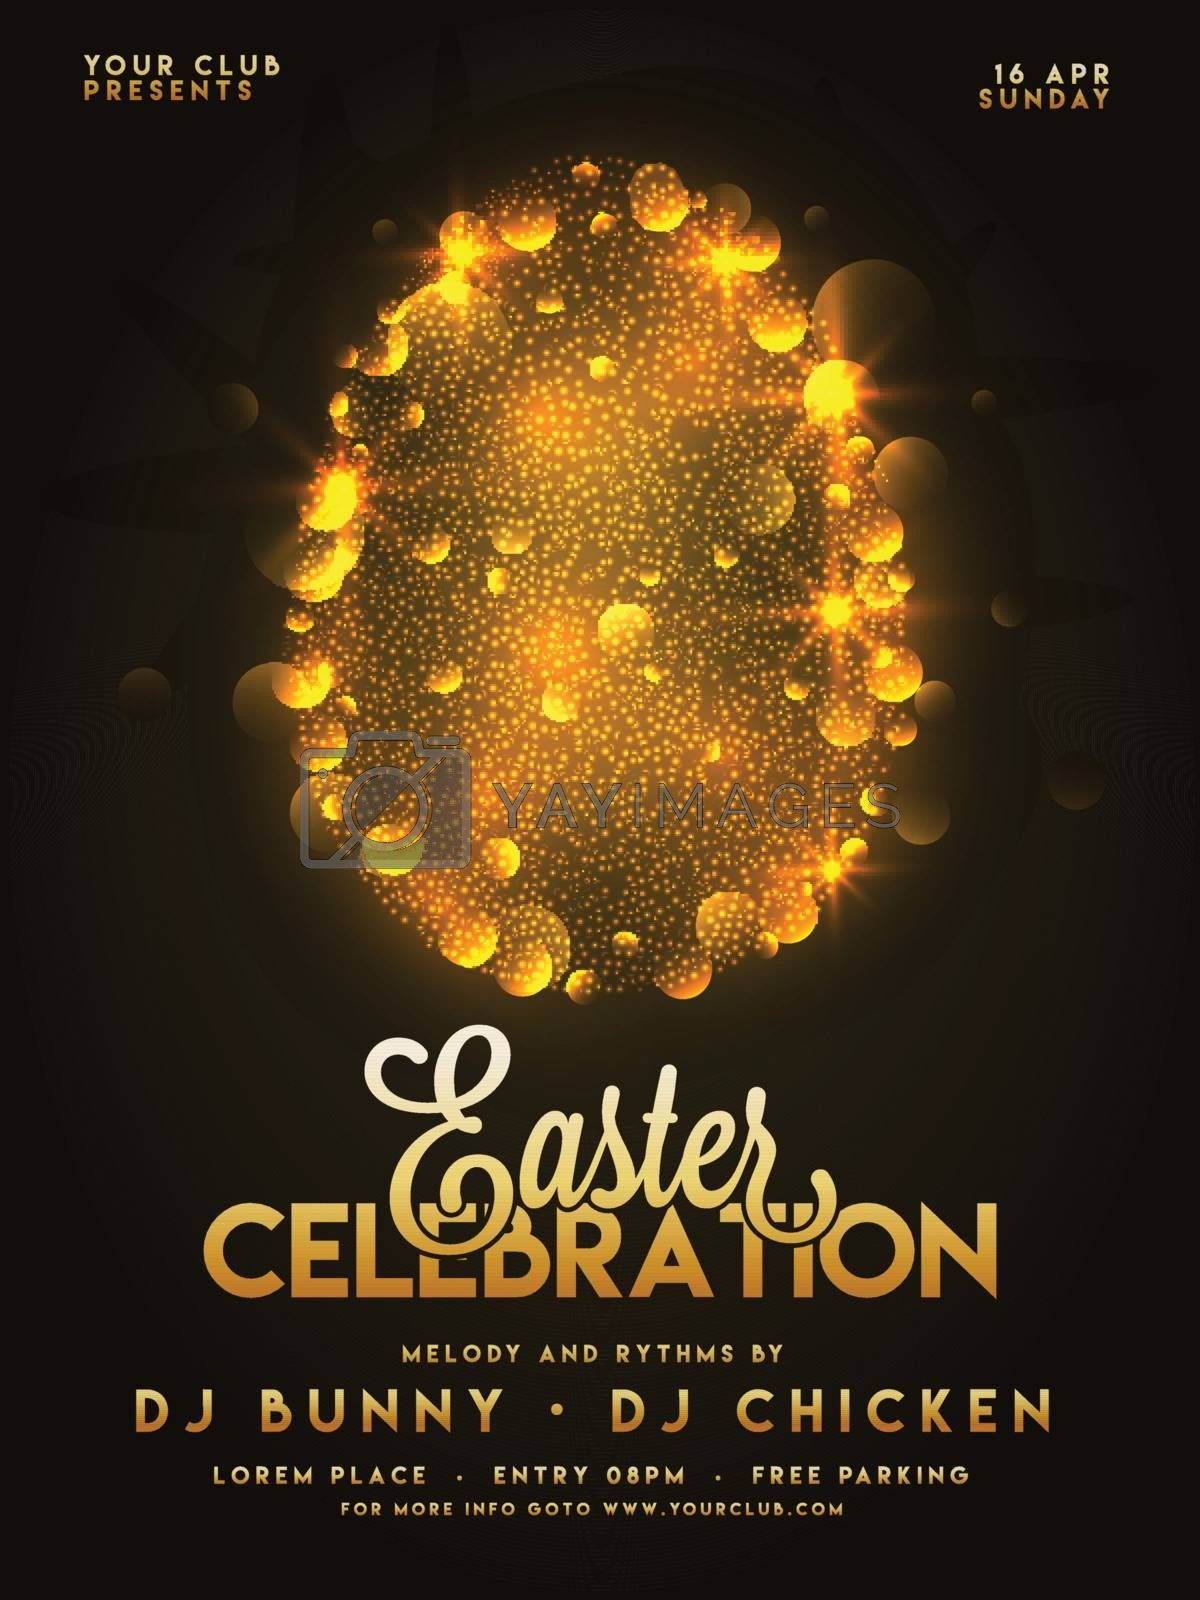 Party poster desing for Easter Celebrations with golden egg.